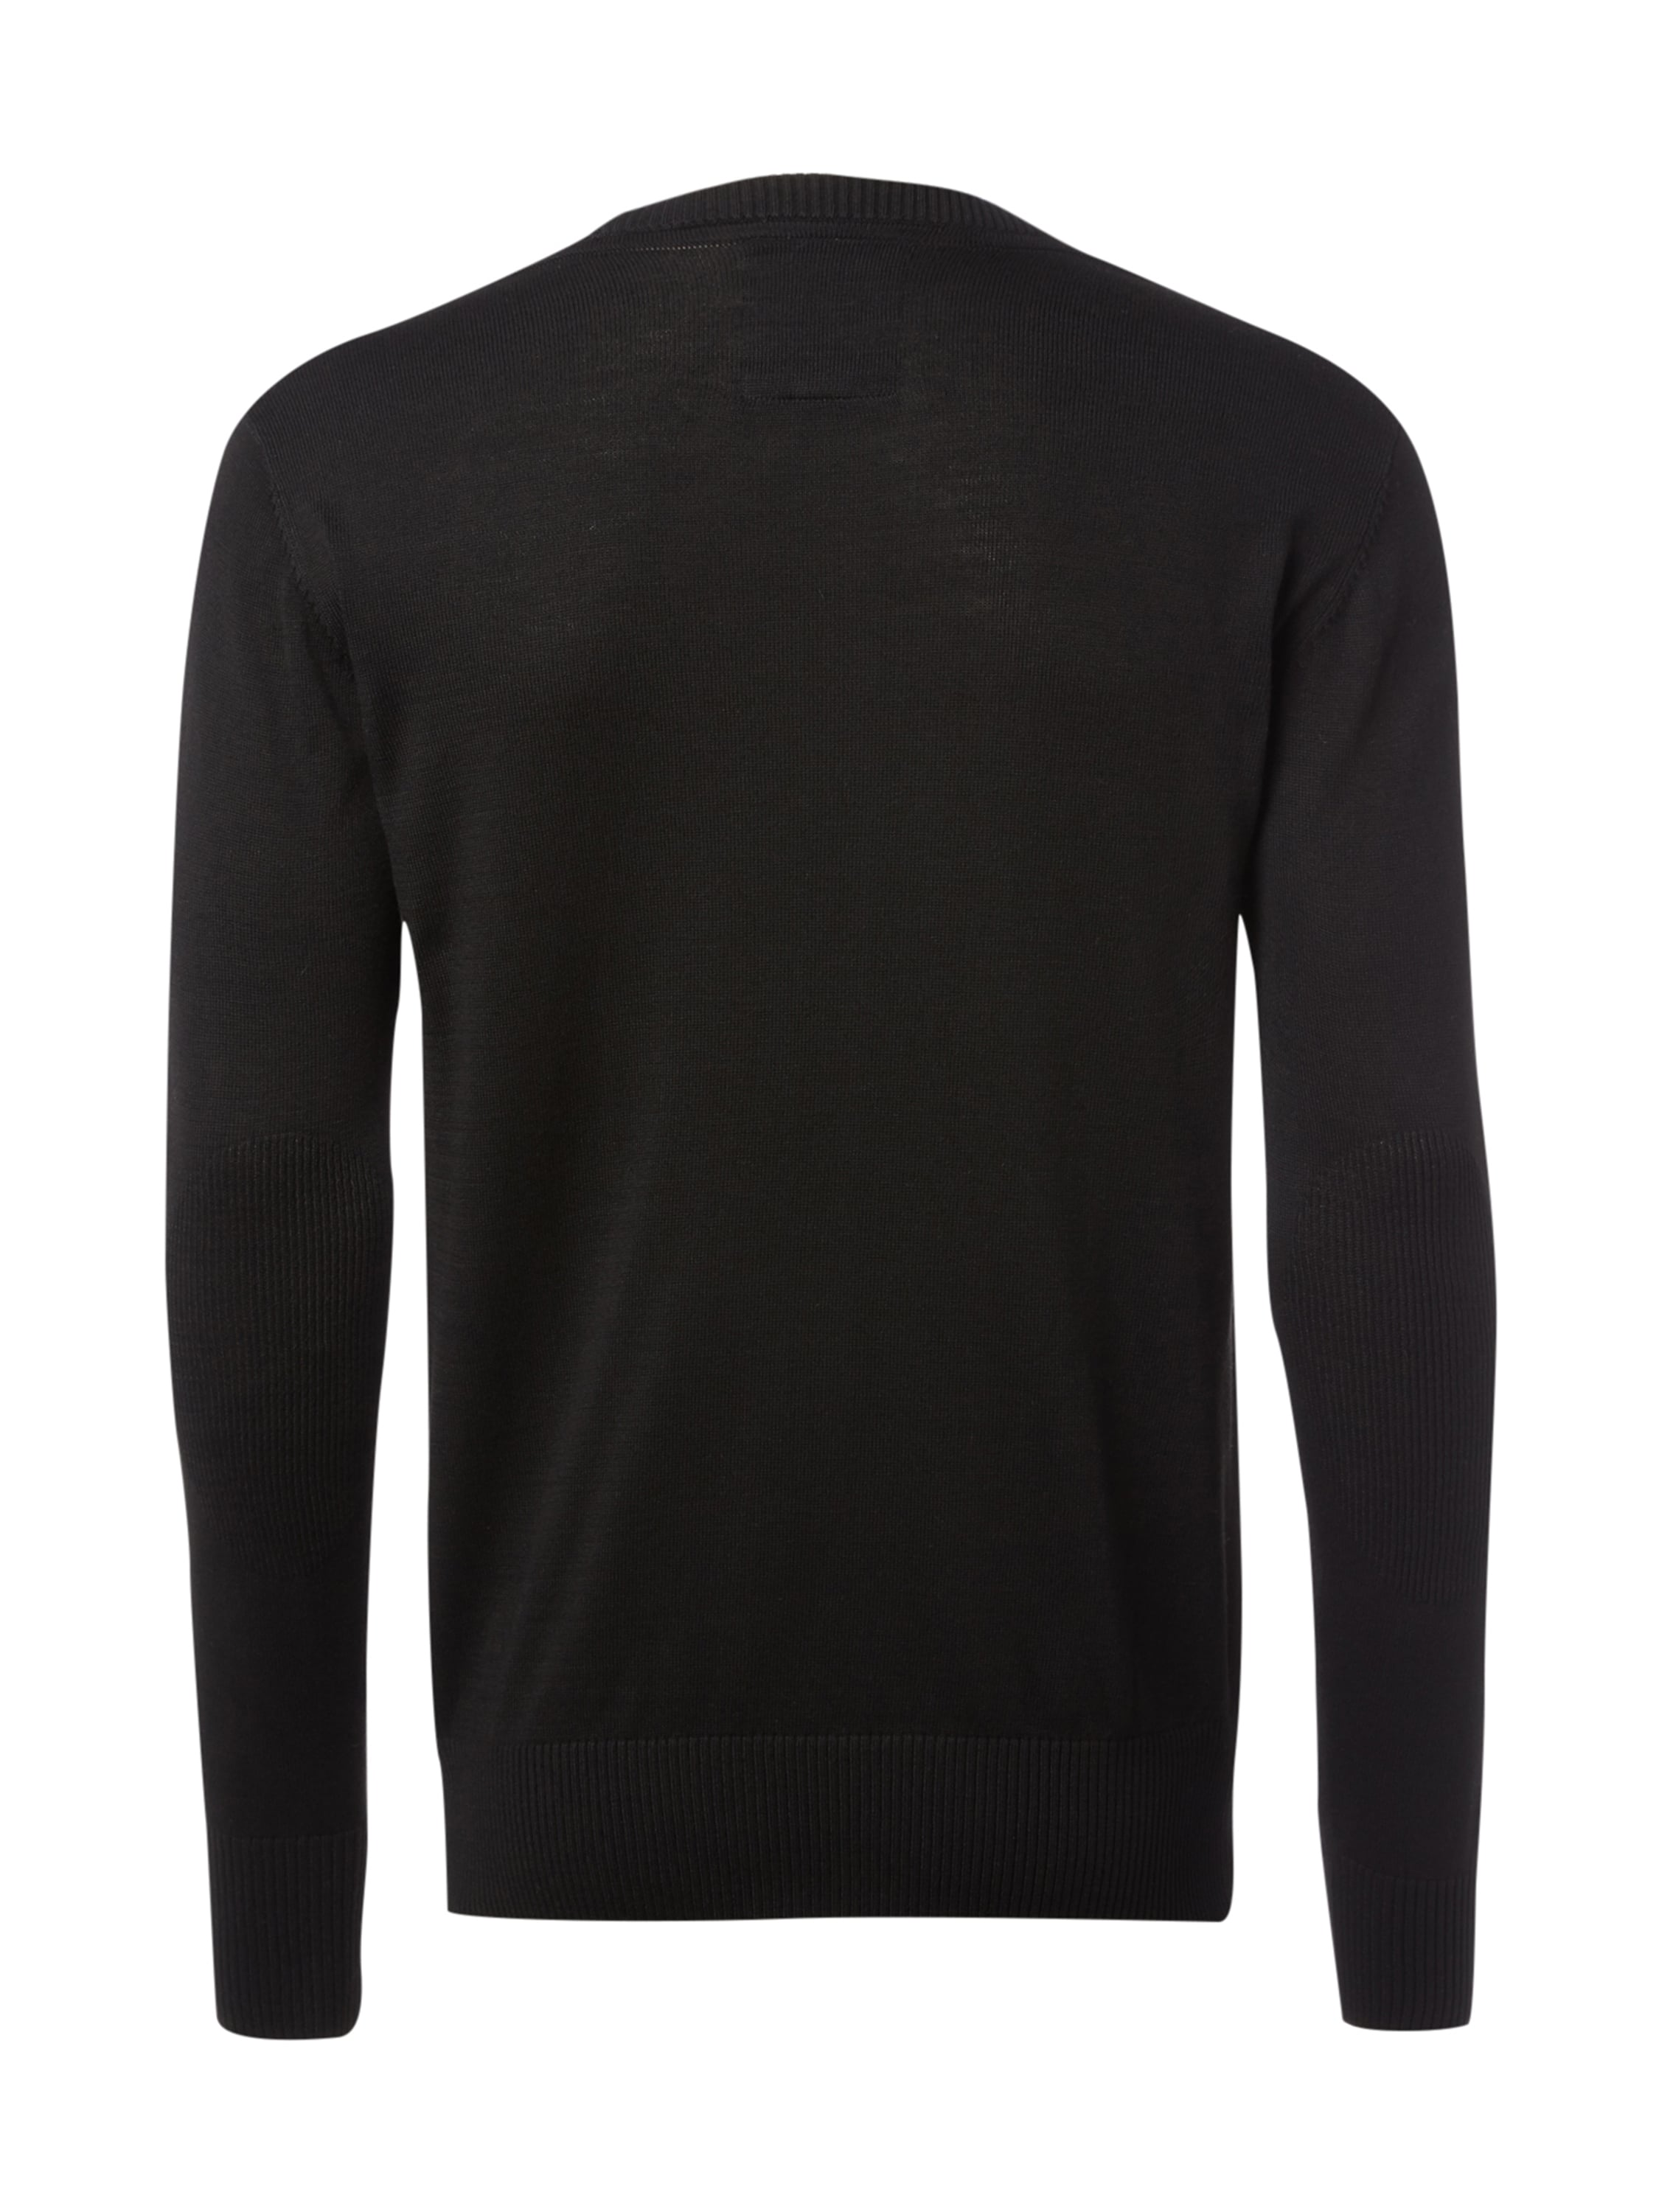 g star raw pullover mit rundhalsausschnitt in grau schwarz online kaufen 9492020 p c at. Black Bedroom Furniture Sets. Home Design Ideas